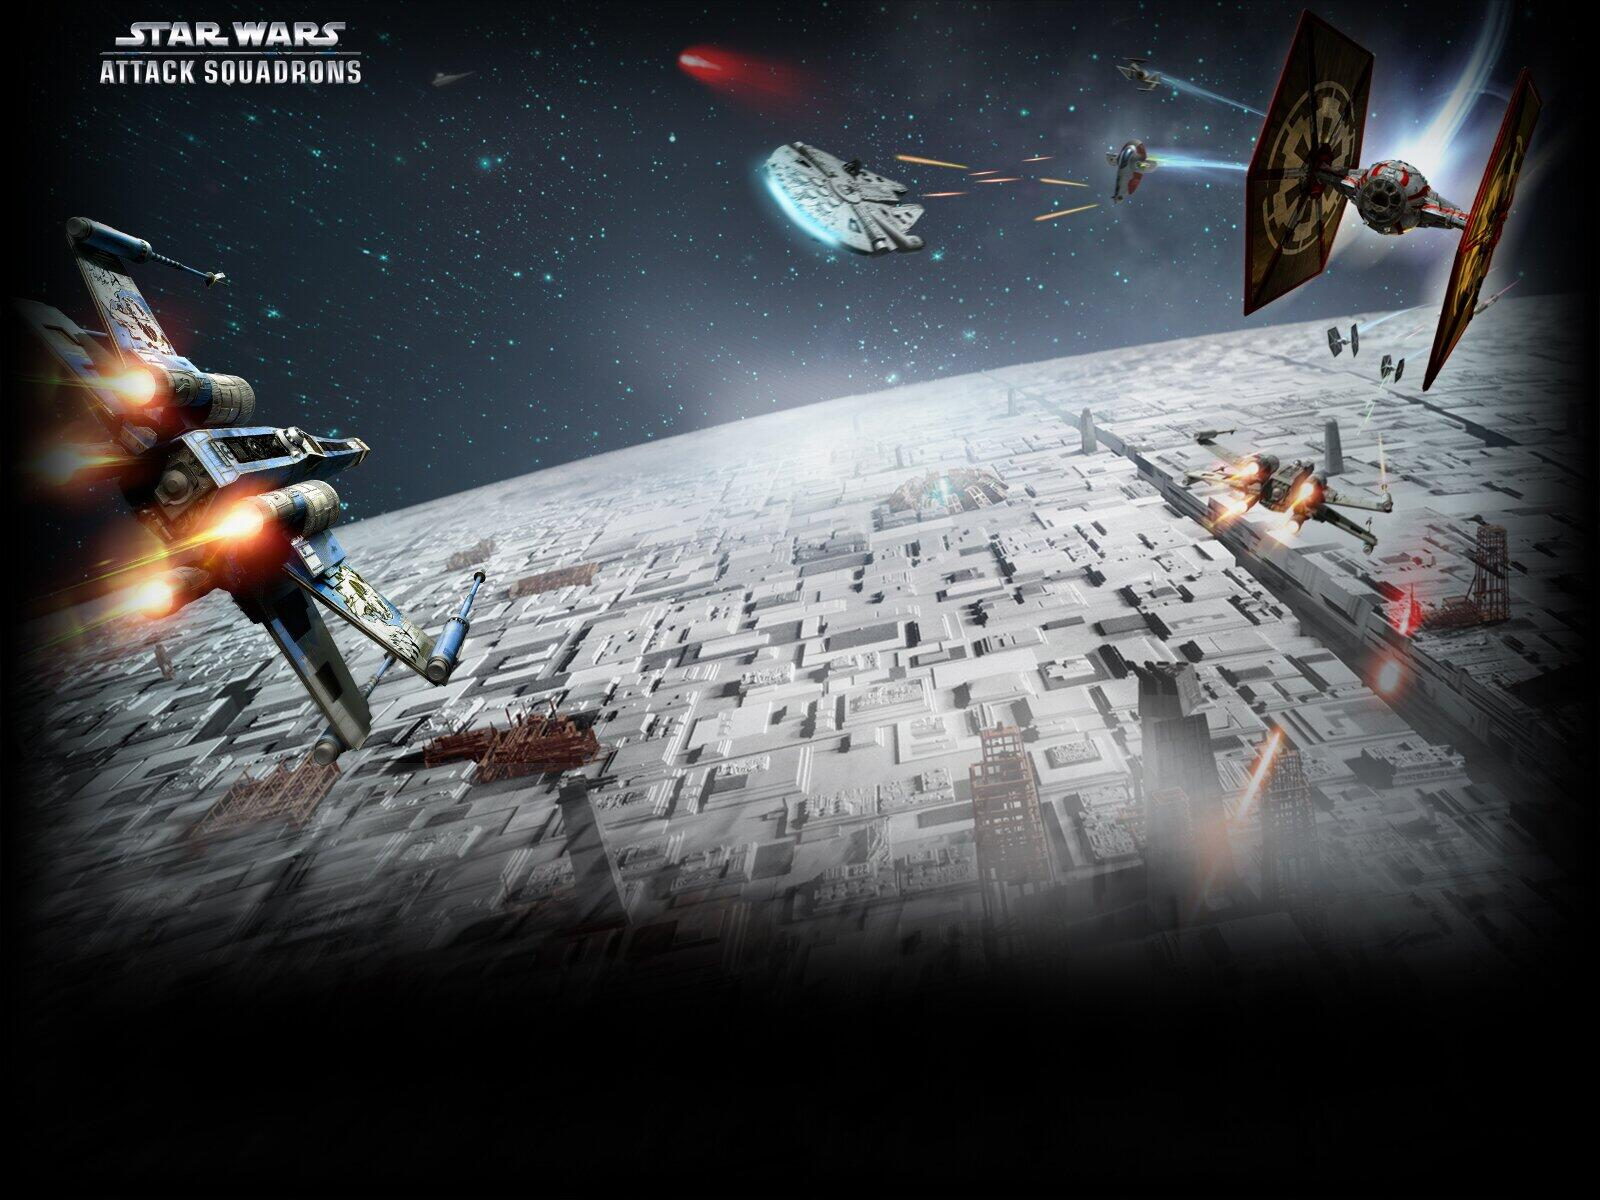 Star Wars: Attack Squadrons wallpaper 1